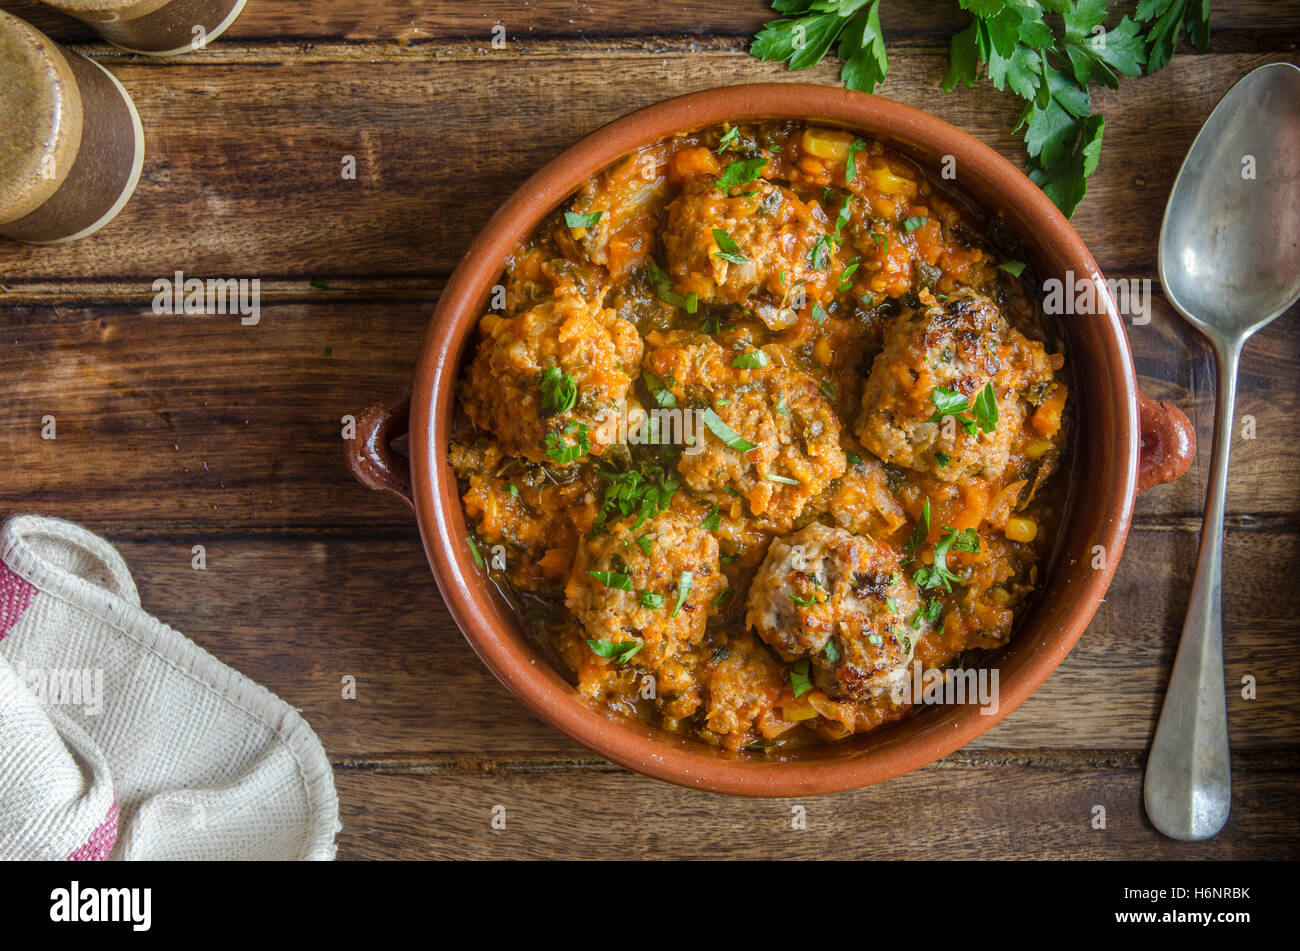 Pork and apple meatballs in a ceramic dish - Stock Image